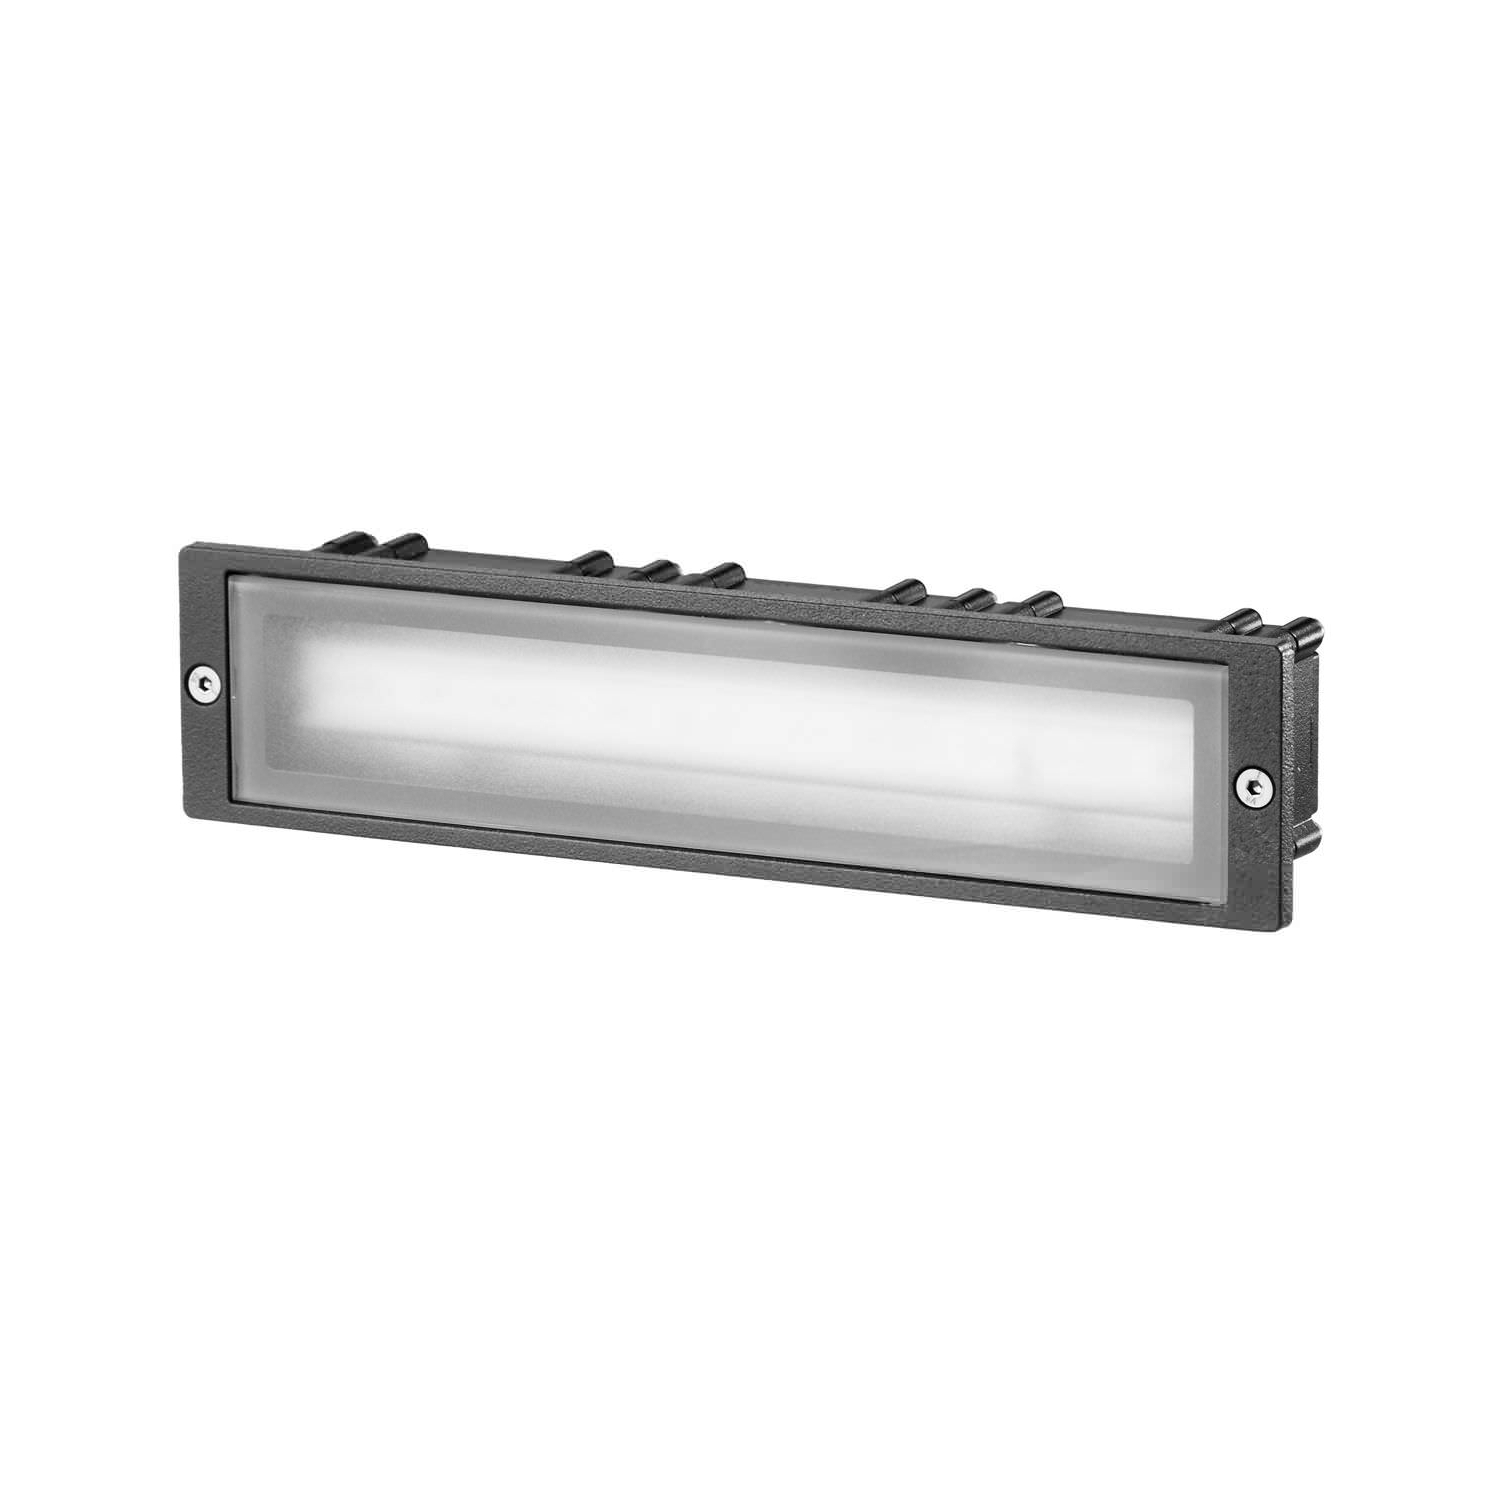 Led Recessed Wall Light Outdoor • Led Lights Decor For Most Up To Date Recessed Outdoor Wall Lighting (View 7 of 20)